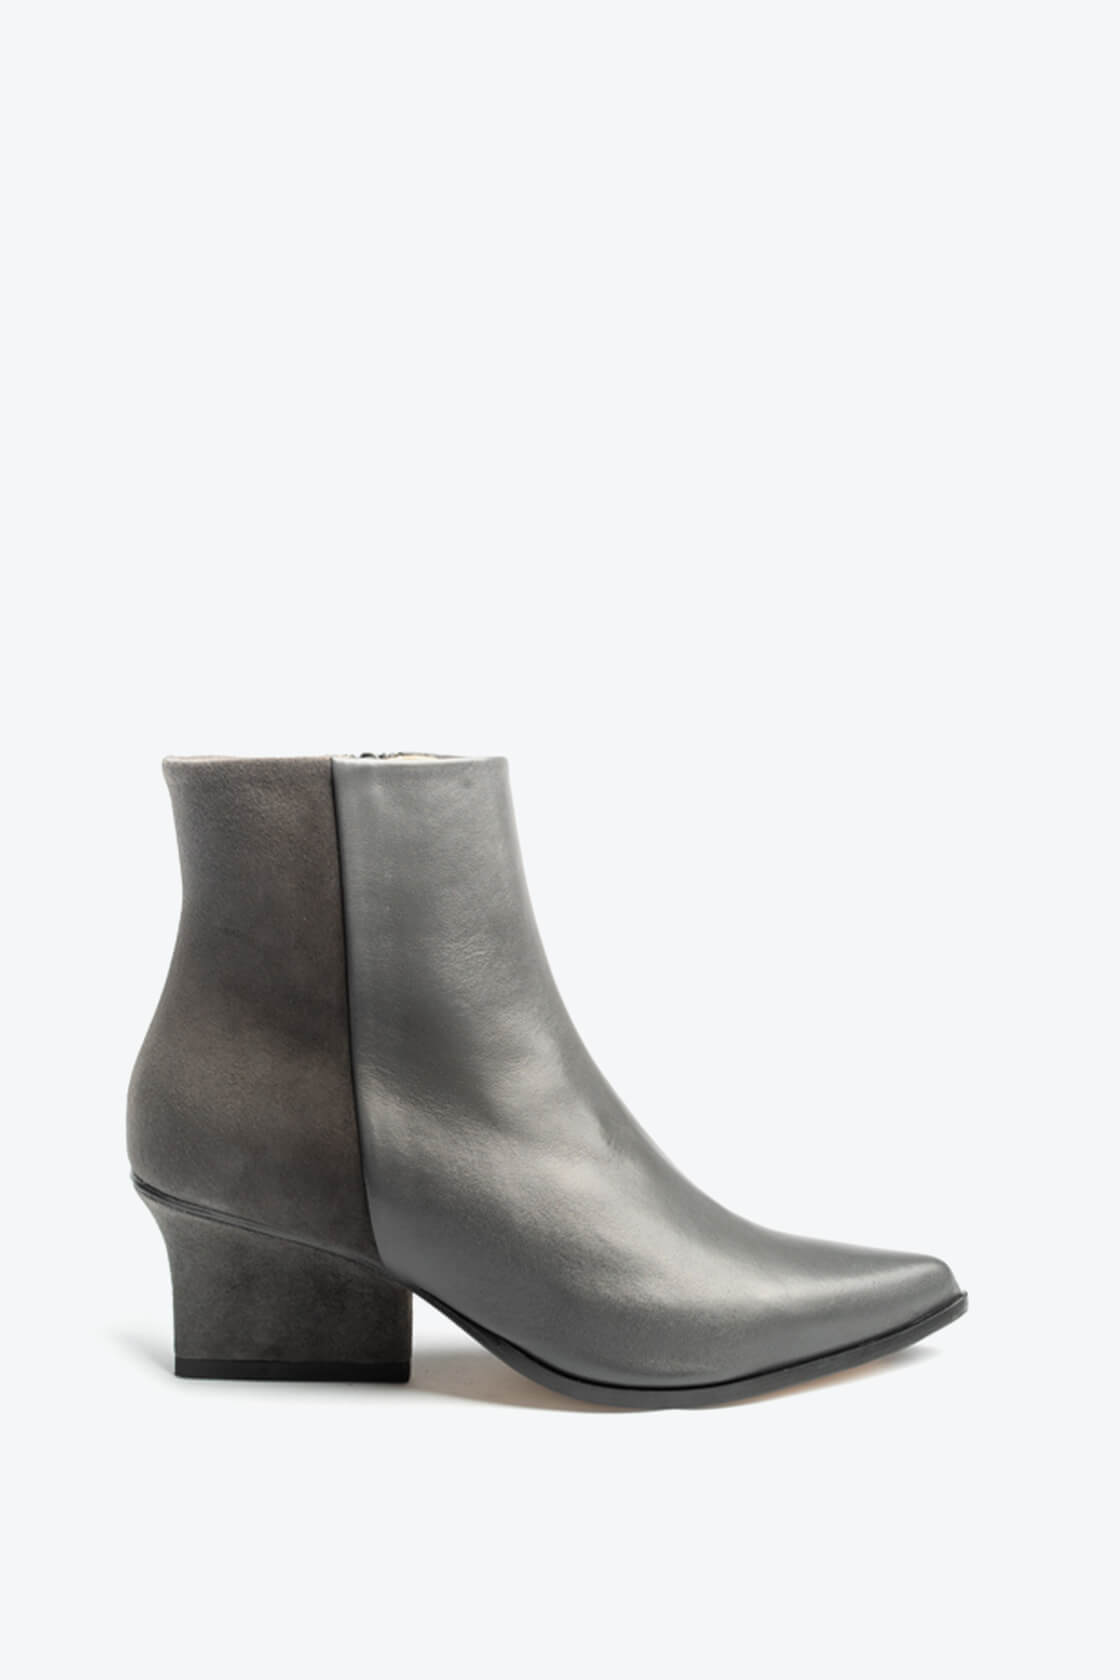 EJK0000064 Ryan ankle boots grey 1